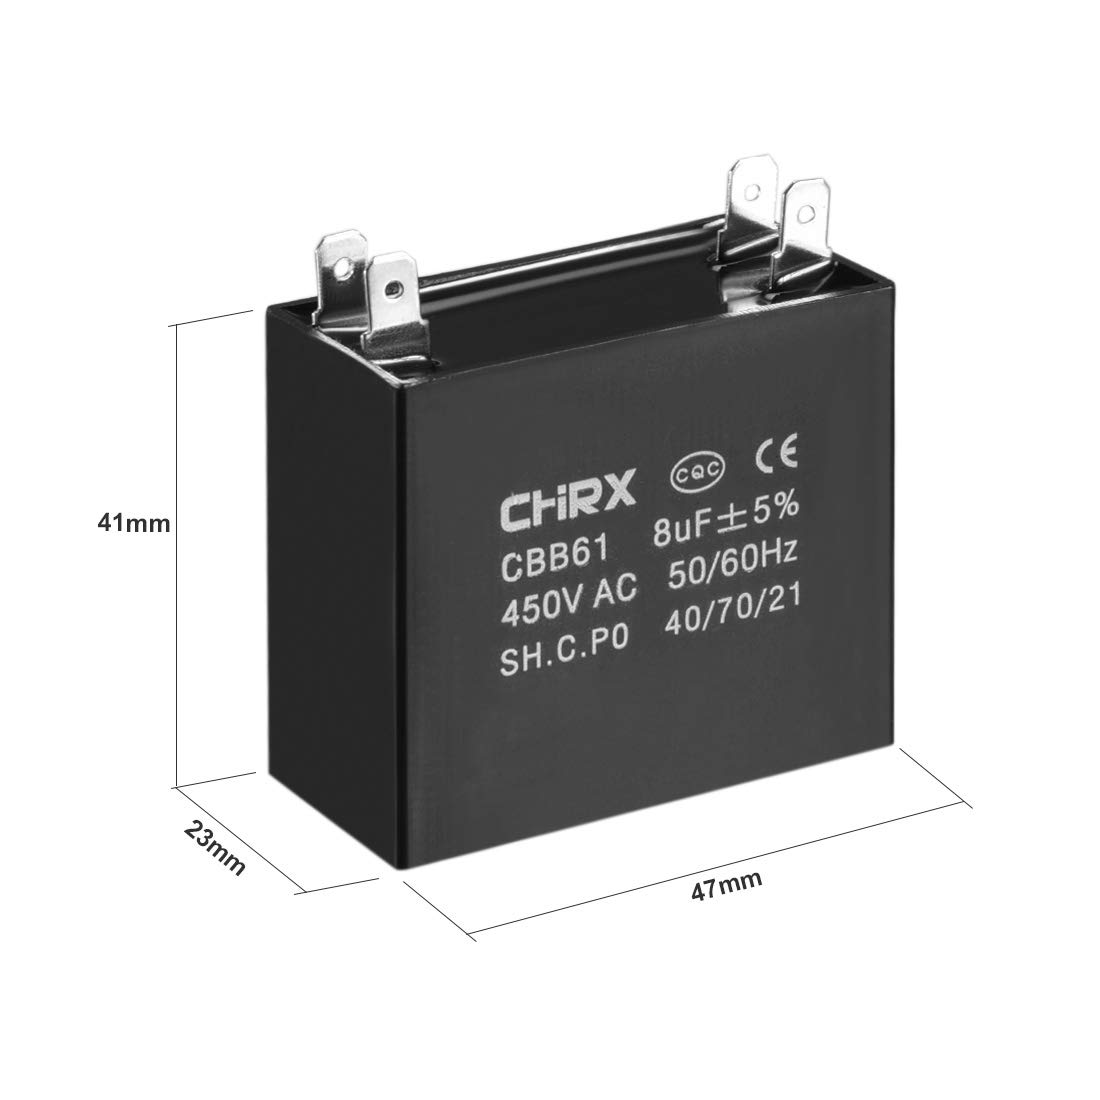 sourcing map CBB61 Run Capacitor 450V AC 6uF Doule Insert Metallized Polypropylene Film Capacitors for Ceiling Fan